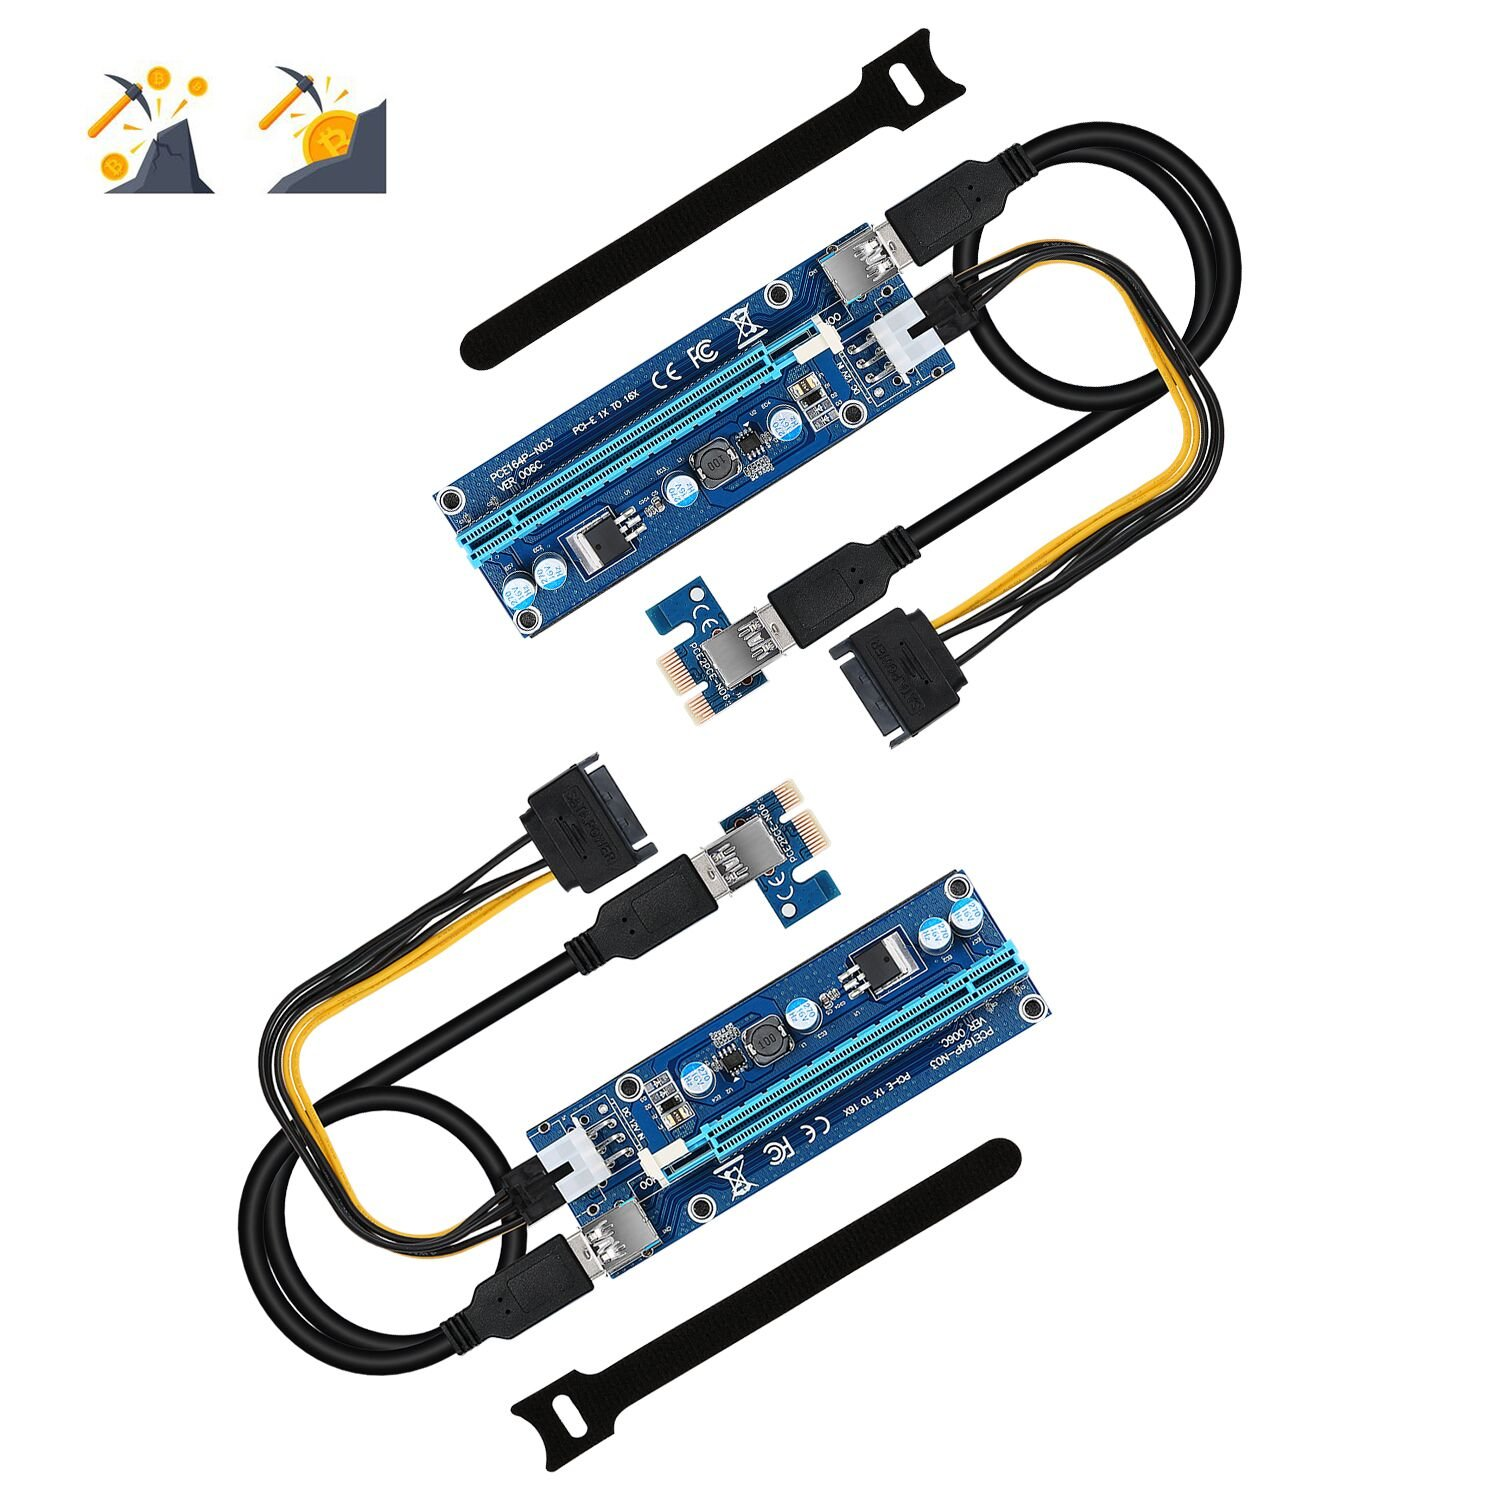 Computer & Office Trustful Pci-e 1x To 16x Extender Riser Card 6pin Cable With Led Light For Btc Miner A Great Variety Of Goods